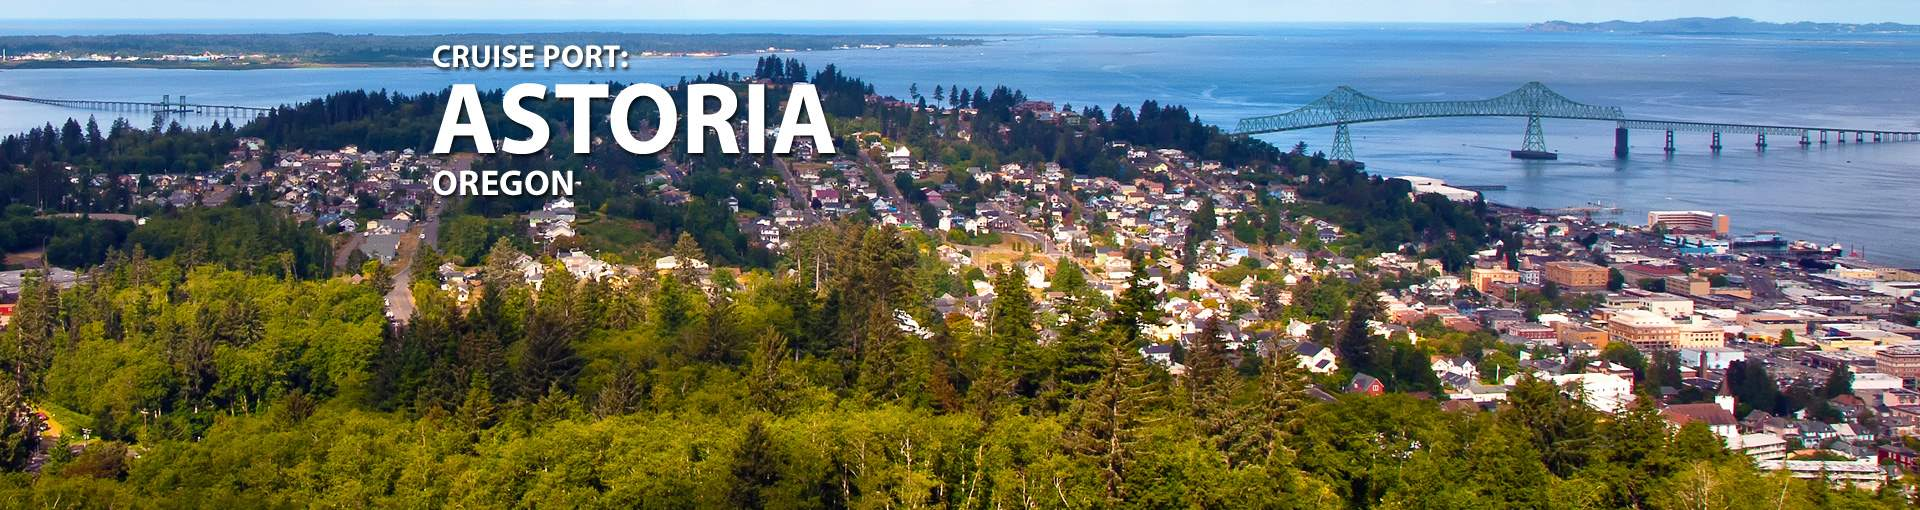 Cruises to Astoria, Oregon